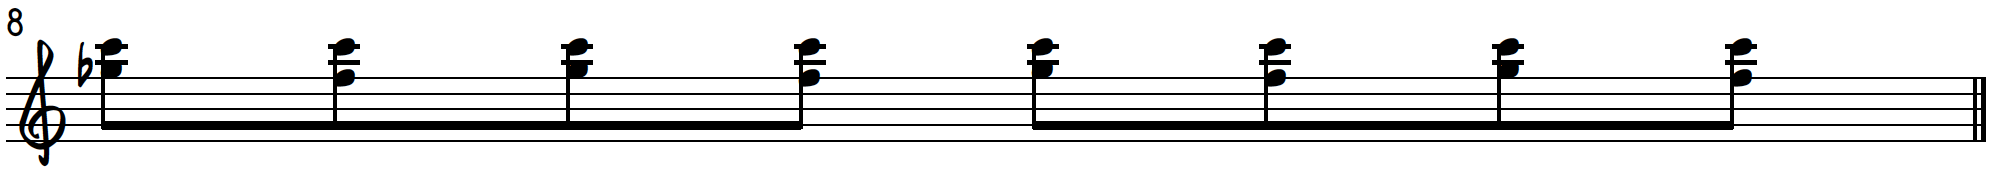 Grip 2 8th note exercise to practice blues piano licks